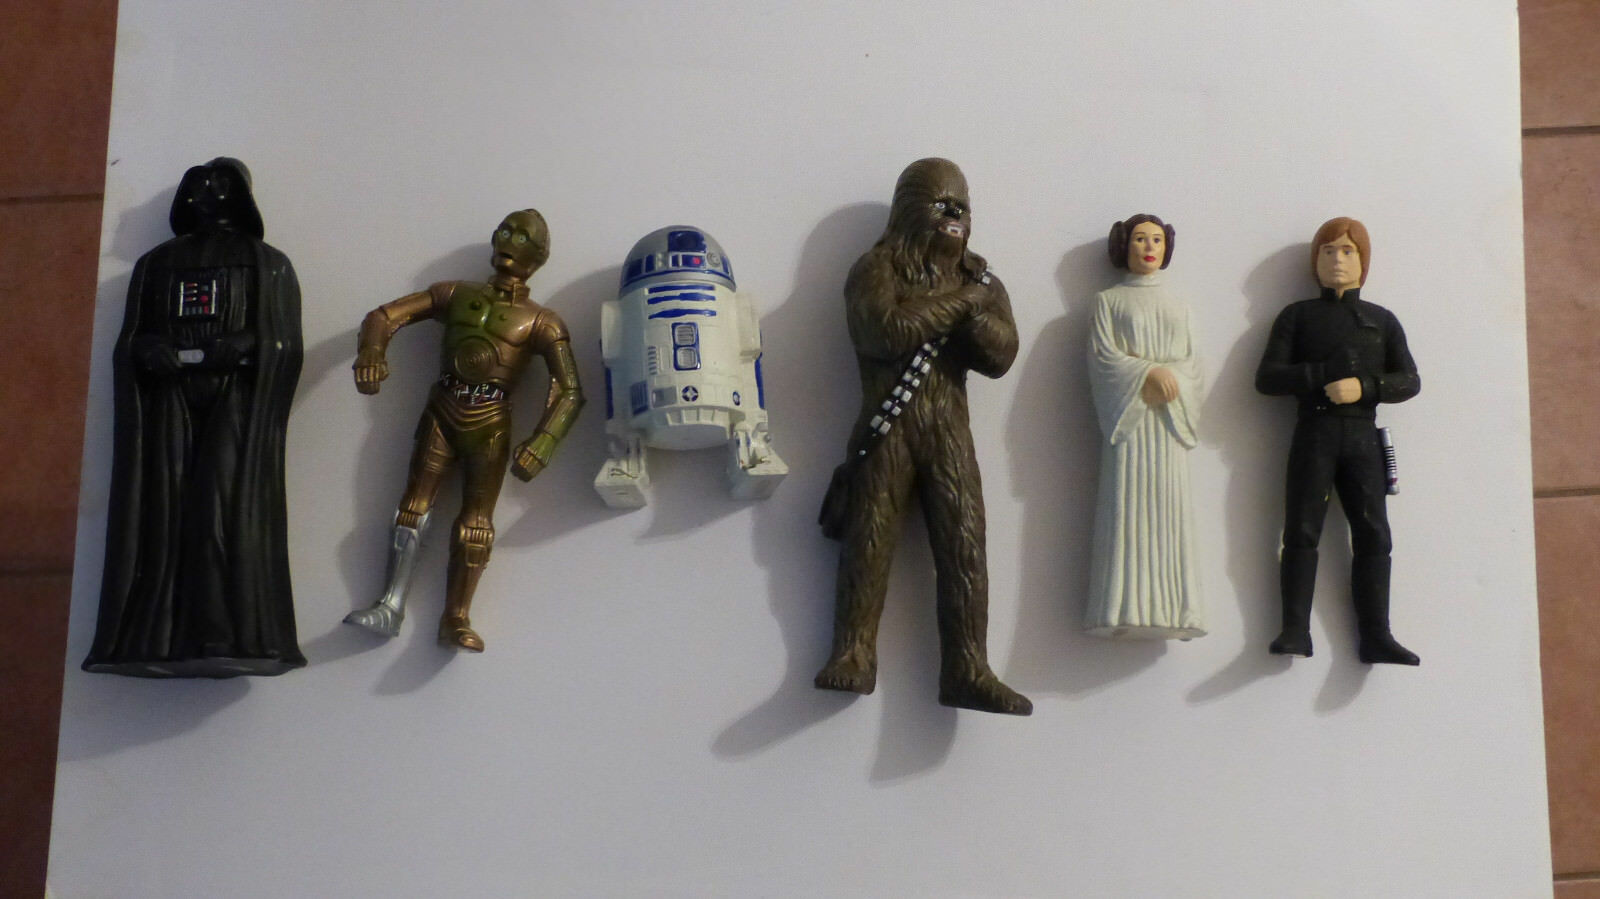 RARE 1993 1993 1993 Star Wars Out of Character Lot(6) VADER, C3PO, R2D2, CHEW, LEIA, LUKE bcdf3e